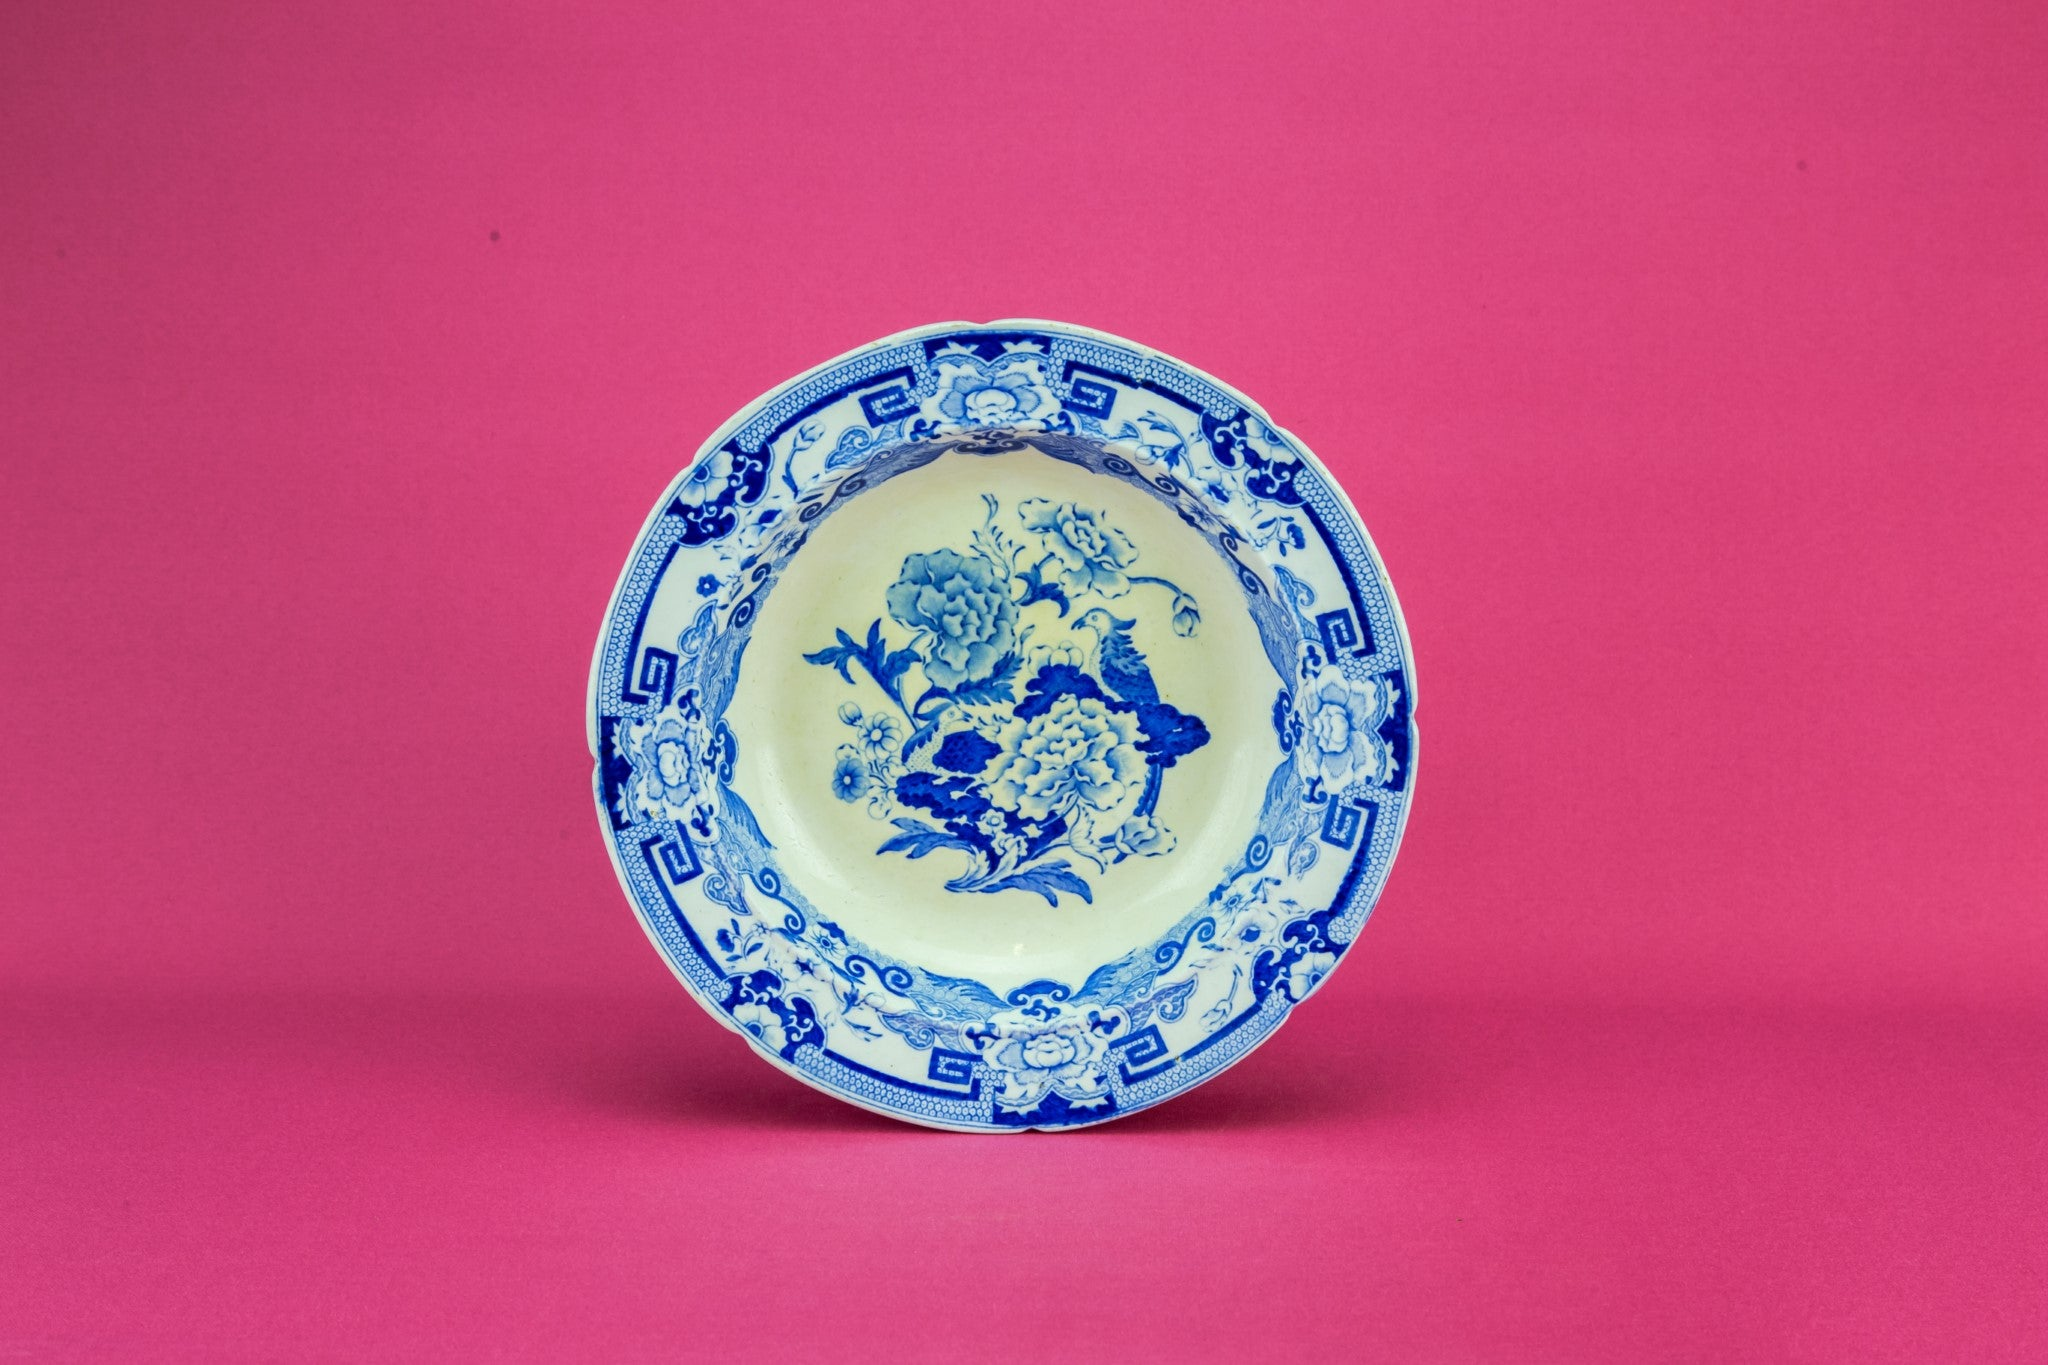 Floral blue and white dish